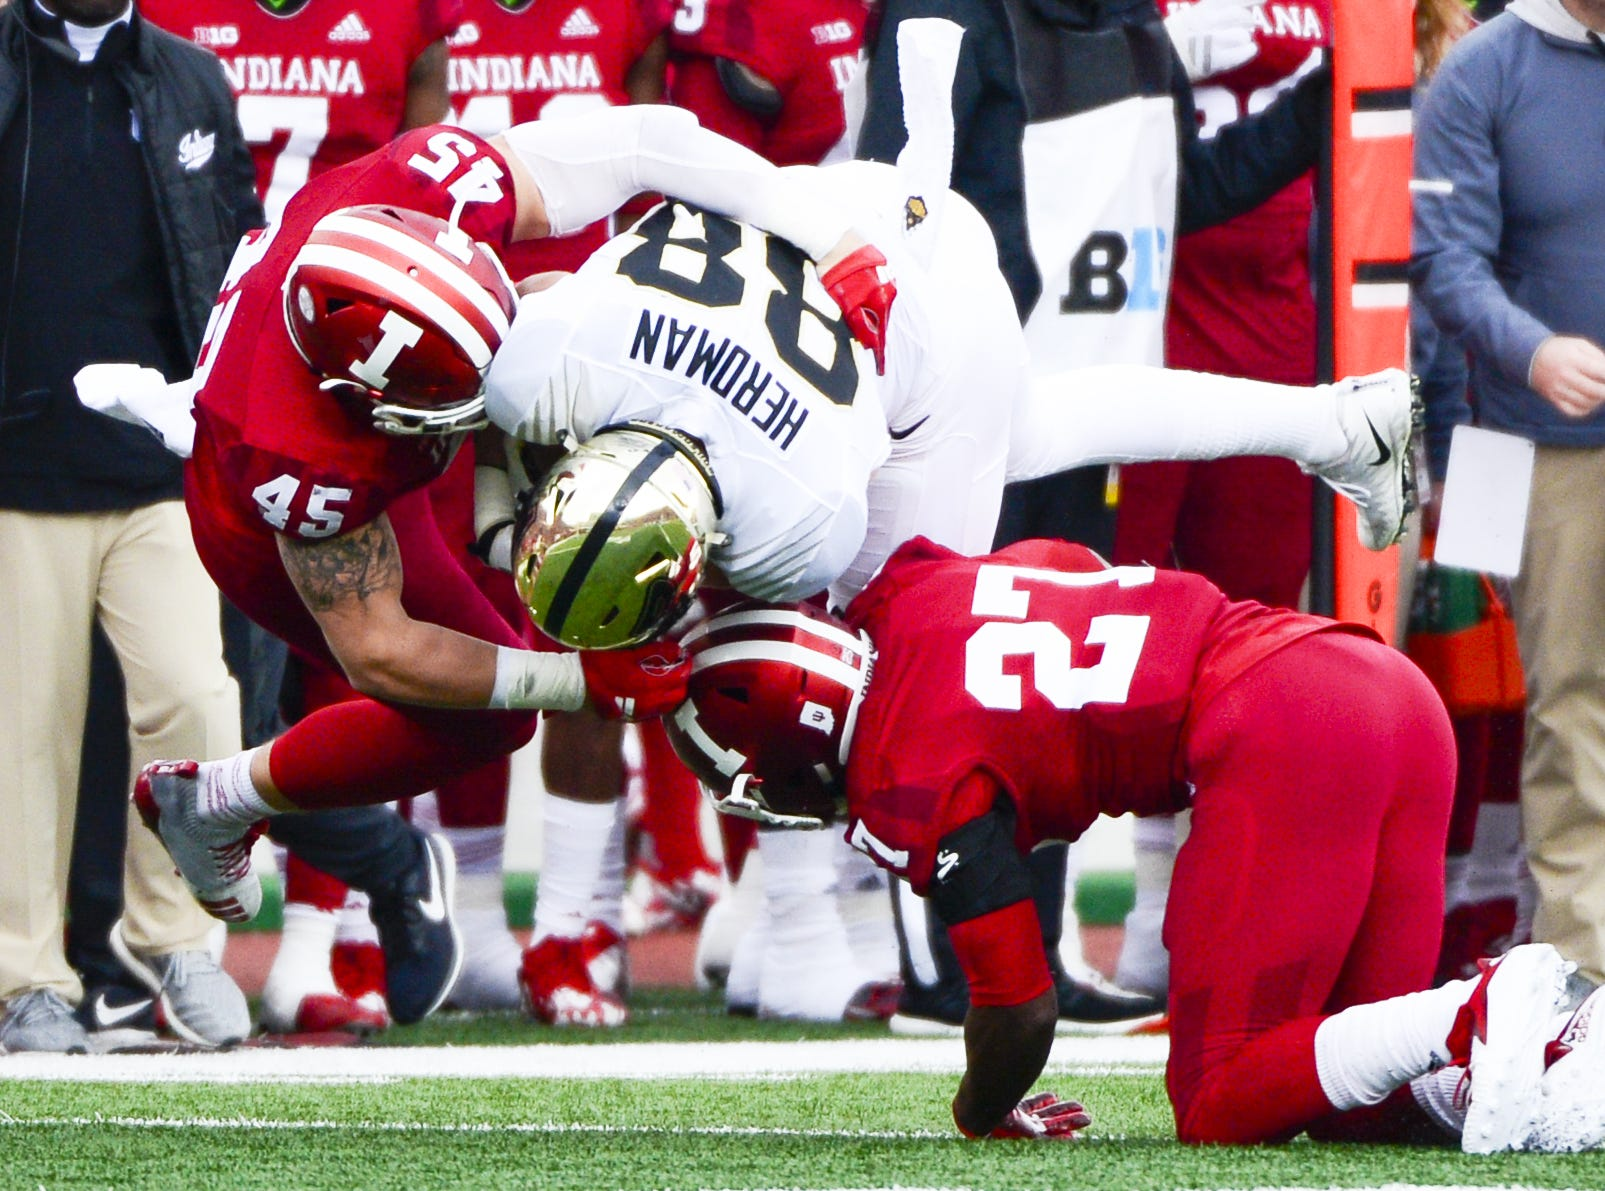 Indiana Hoosiers linebacker T.D. Roof (45) makes a tackle during the game against Purdue at Memorial Stadium in Bloomington Ind., on Saturday, Nov. 24, 2018.